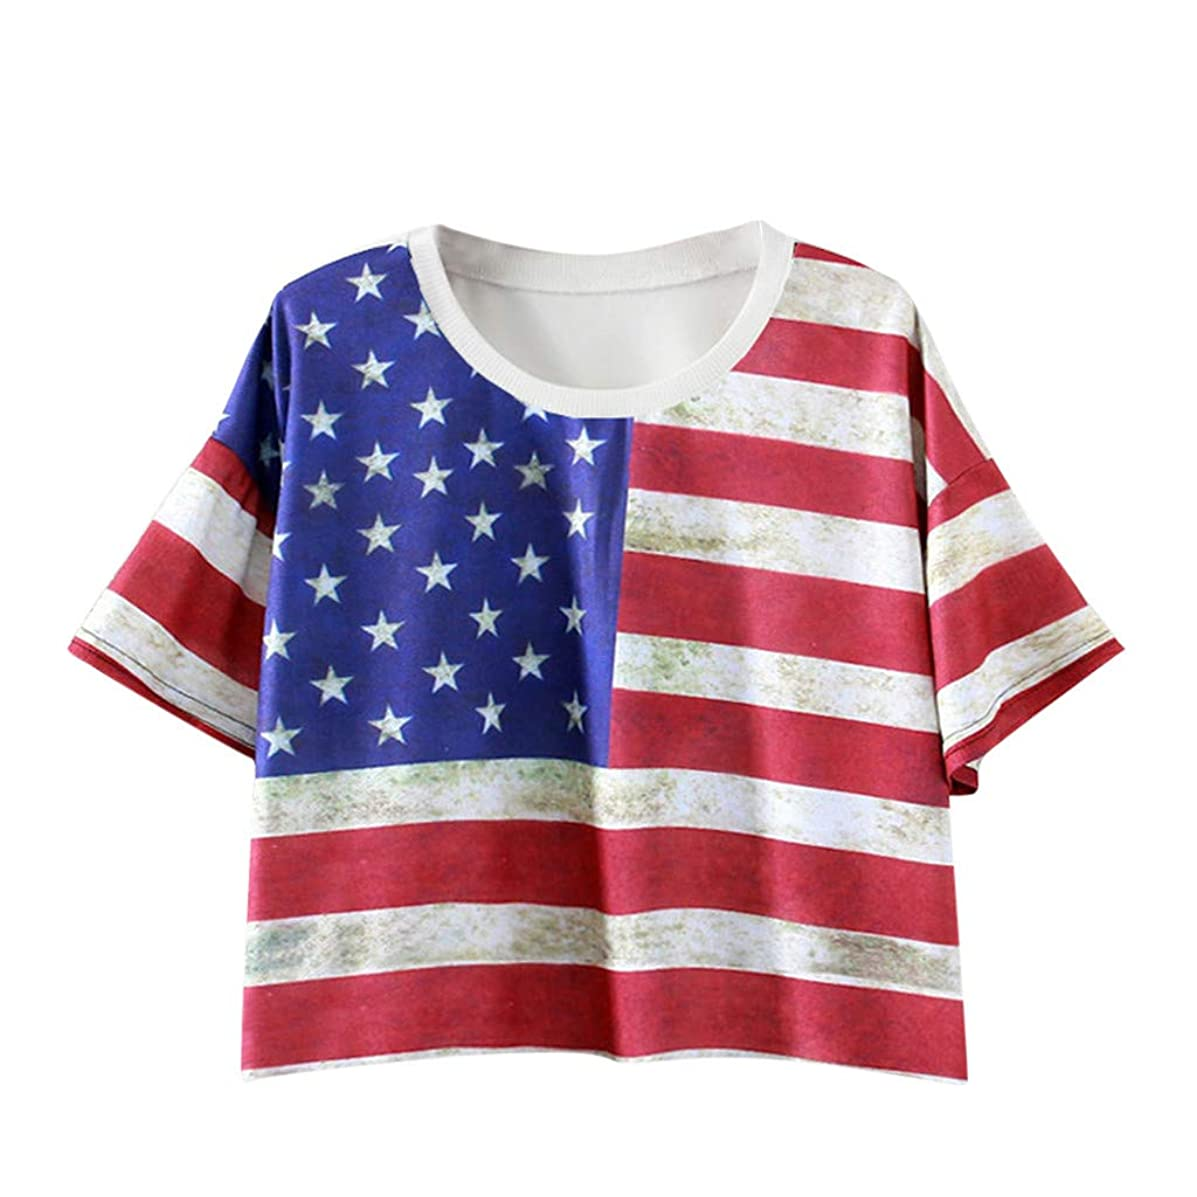 Short Sleeve Tee Blouse for Women,Amiley Womens American USA Flag Crop Tops Short Sleeve 4th of July Blouses T Shirts